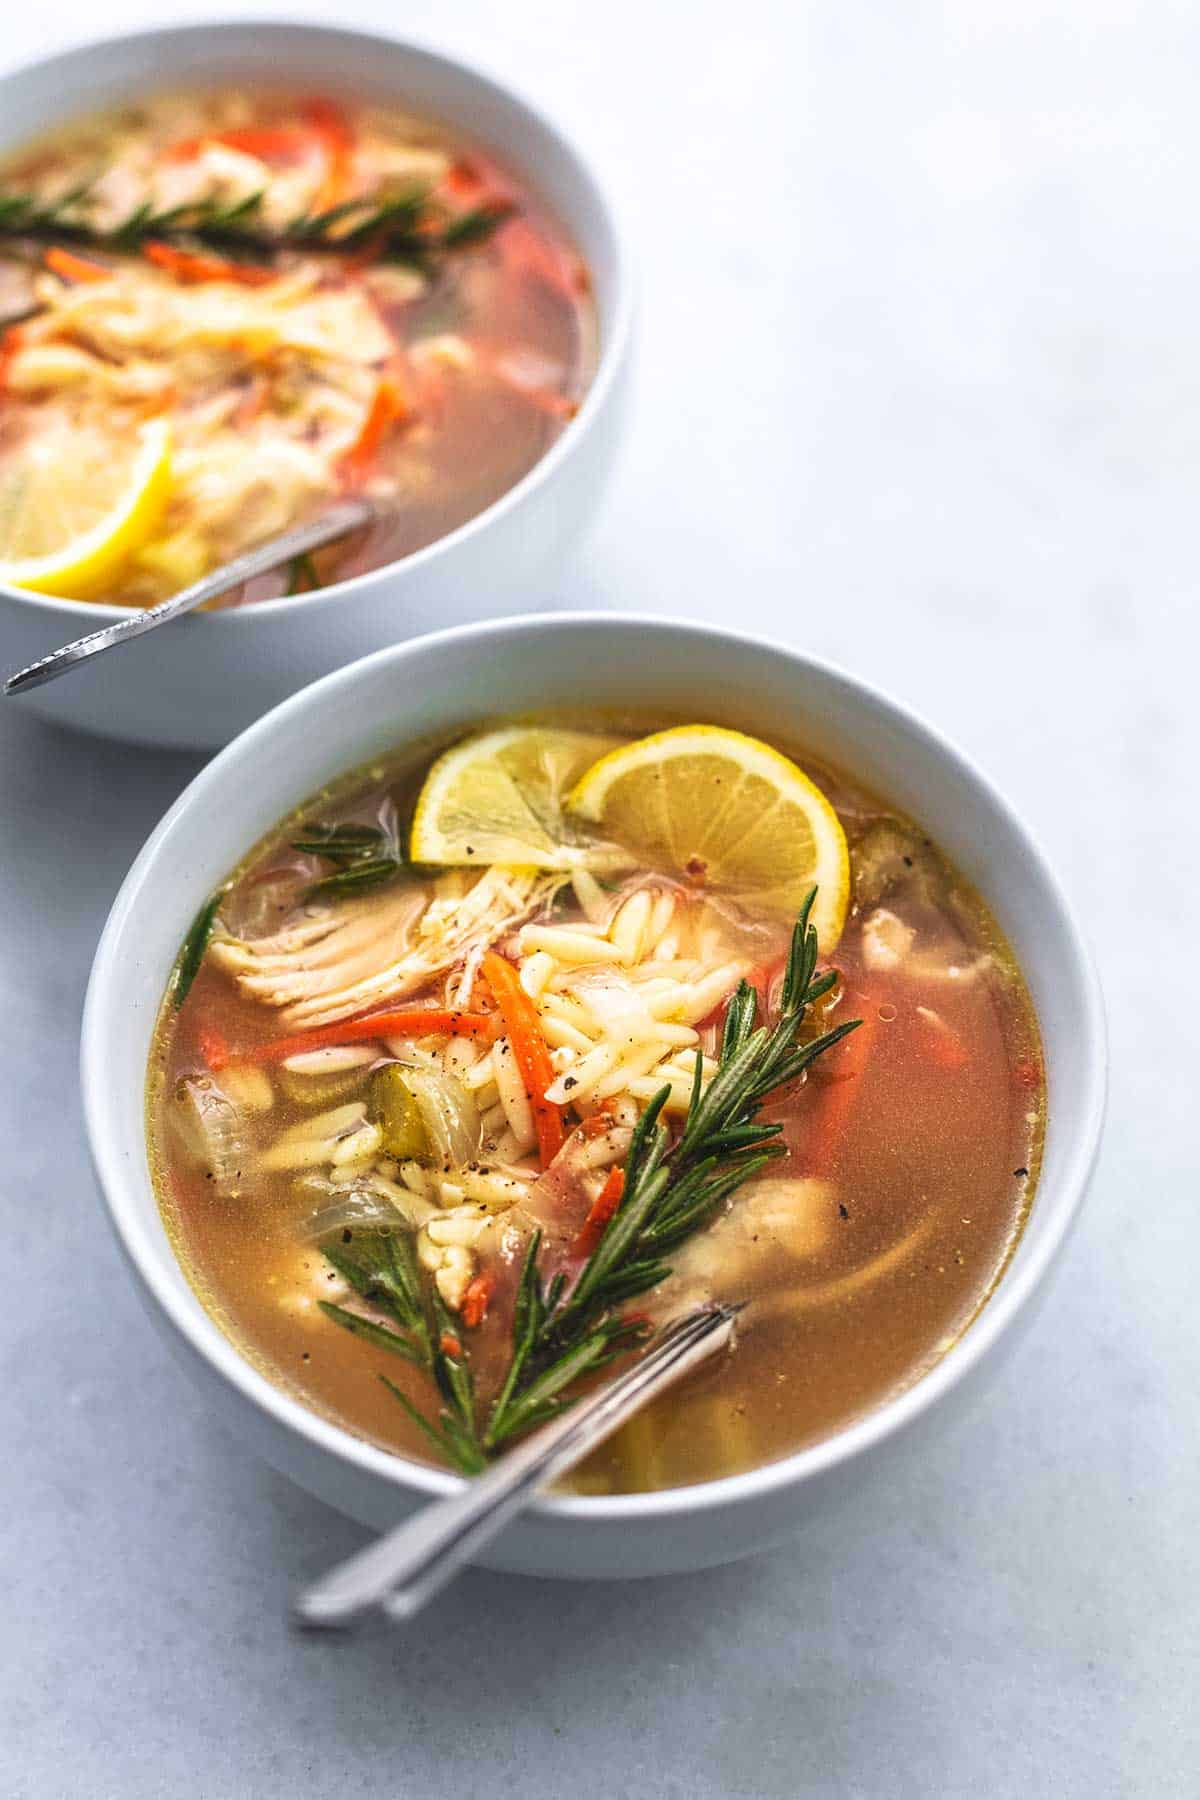 up close bowl of soup with chicken, orzo, lemon wedges, and rosemary sprig